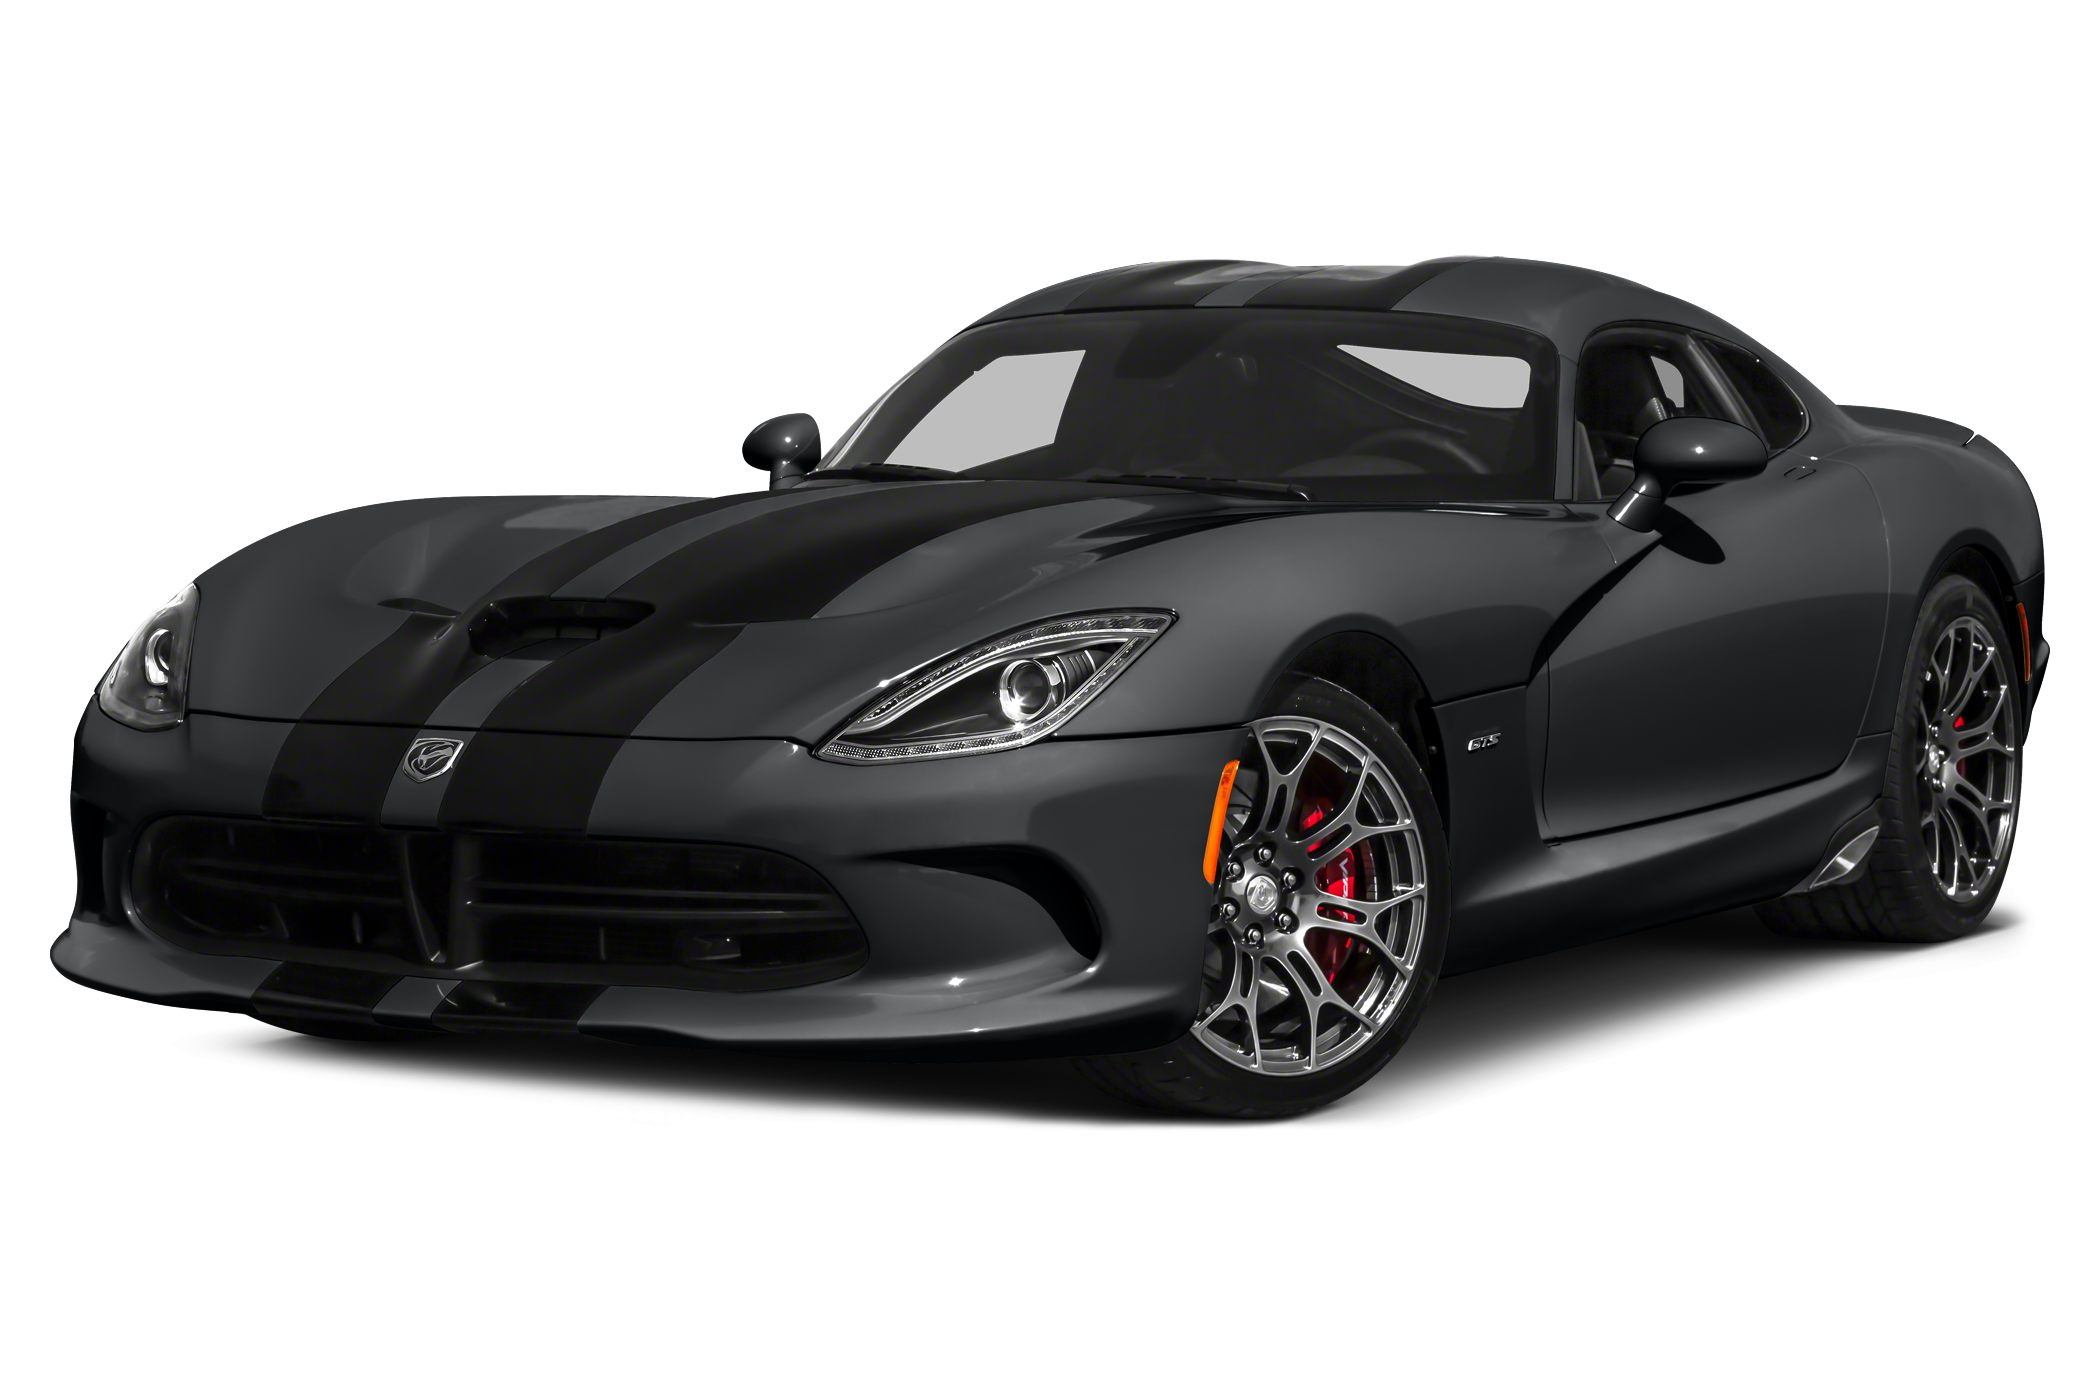 2014 Dodge SRT Viper Base Coupe for sale in Springfield for $90,750 with 12 miles.